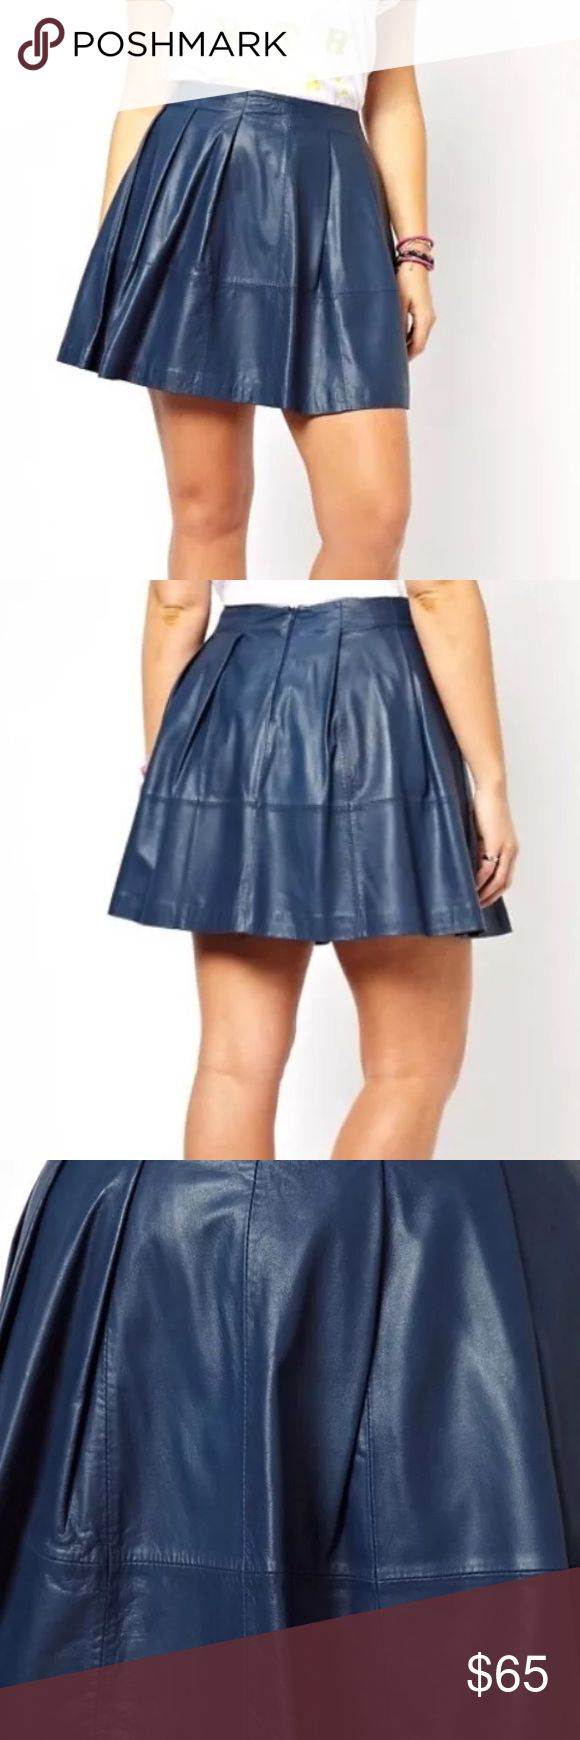 "ASOS Curve exclusive navy leather skater skirt ASOS curve 18 plus size authentic leather skirt in navy. Sold out online . Perfect condition. $159 msrp . Circle skater skirt style. 21"" long 42"" waist. Fully lined. Well made ASOS Curve Skirts Circle & Skater"